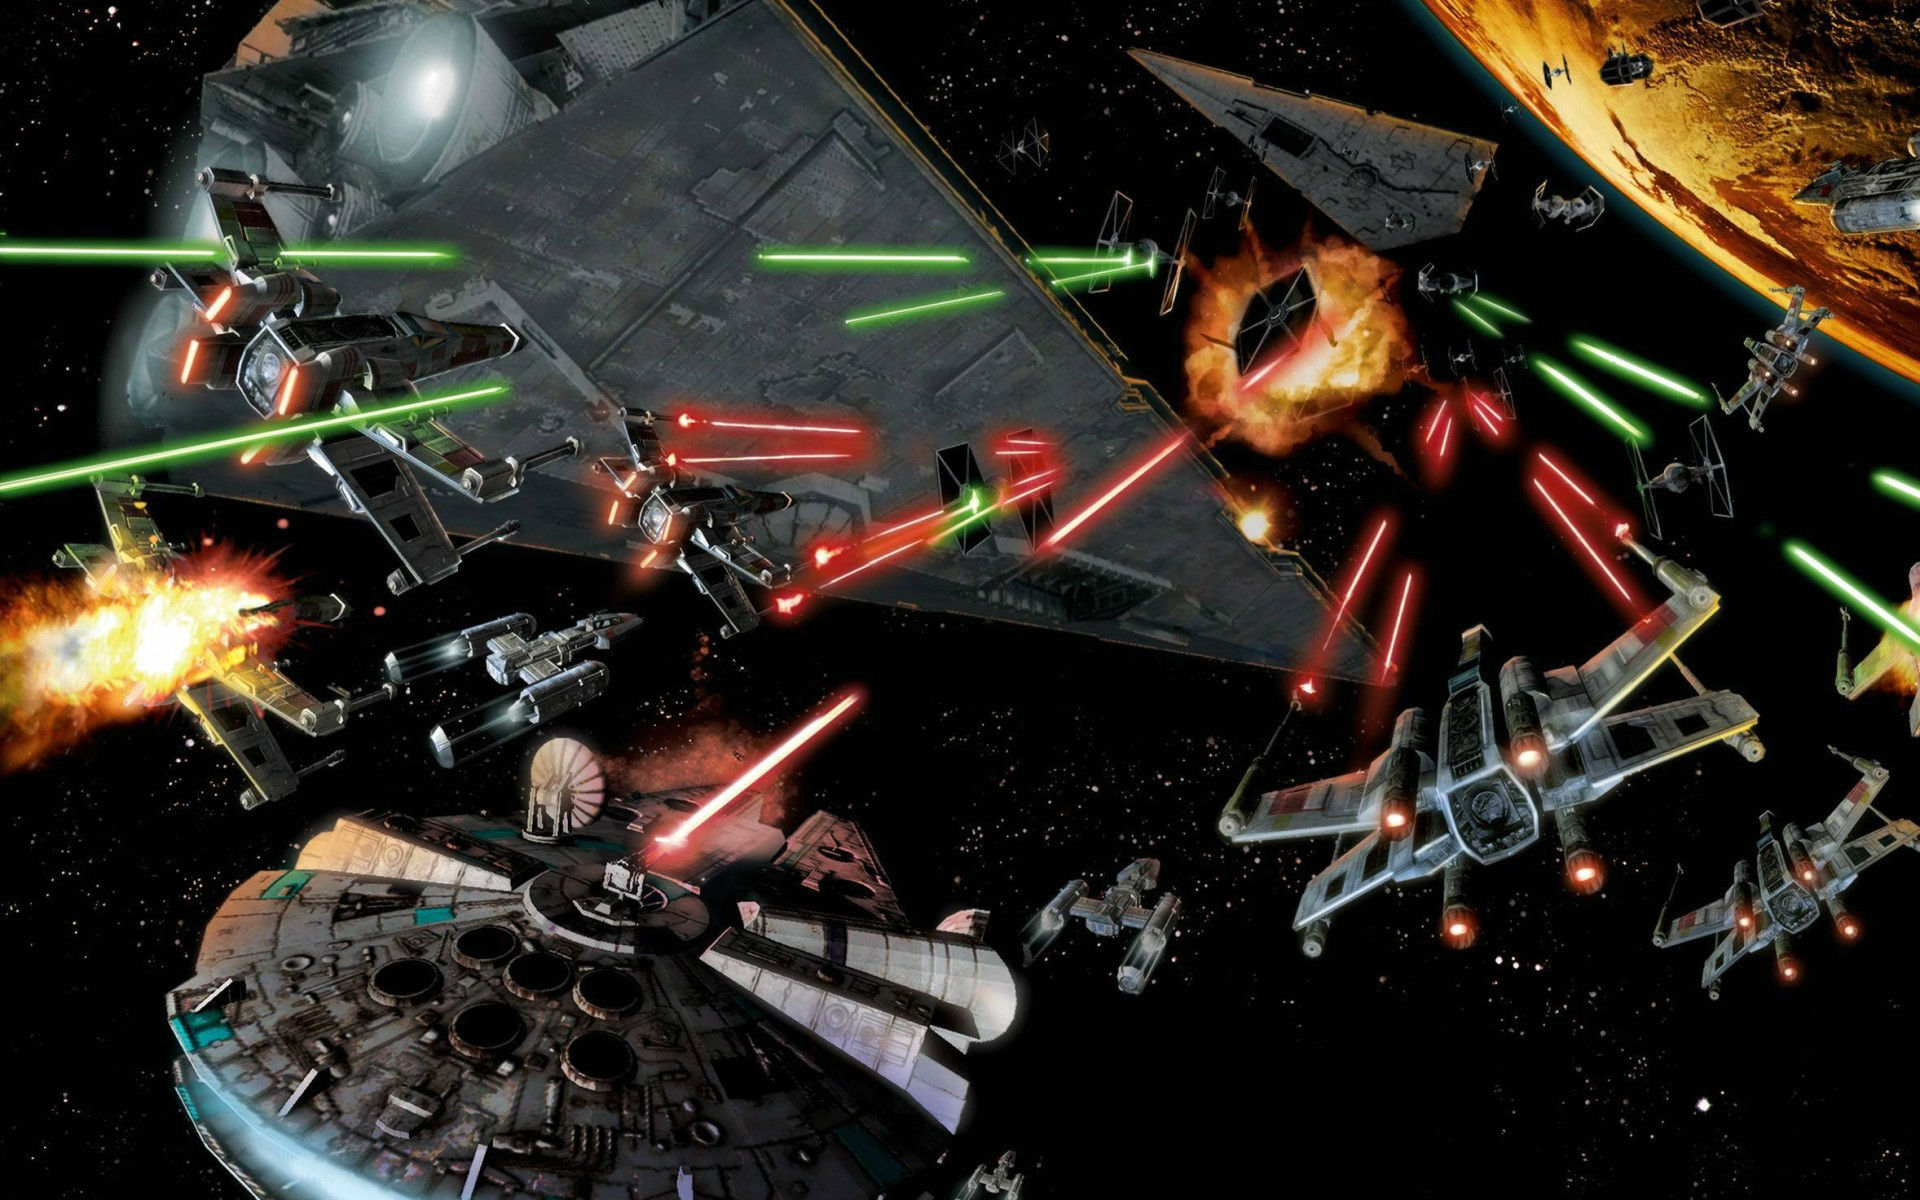 space Battle Star Wars Millennium Falcon Art Wallpapers HD 1920x1200